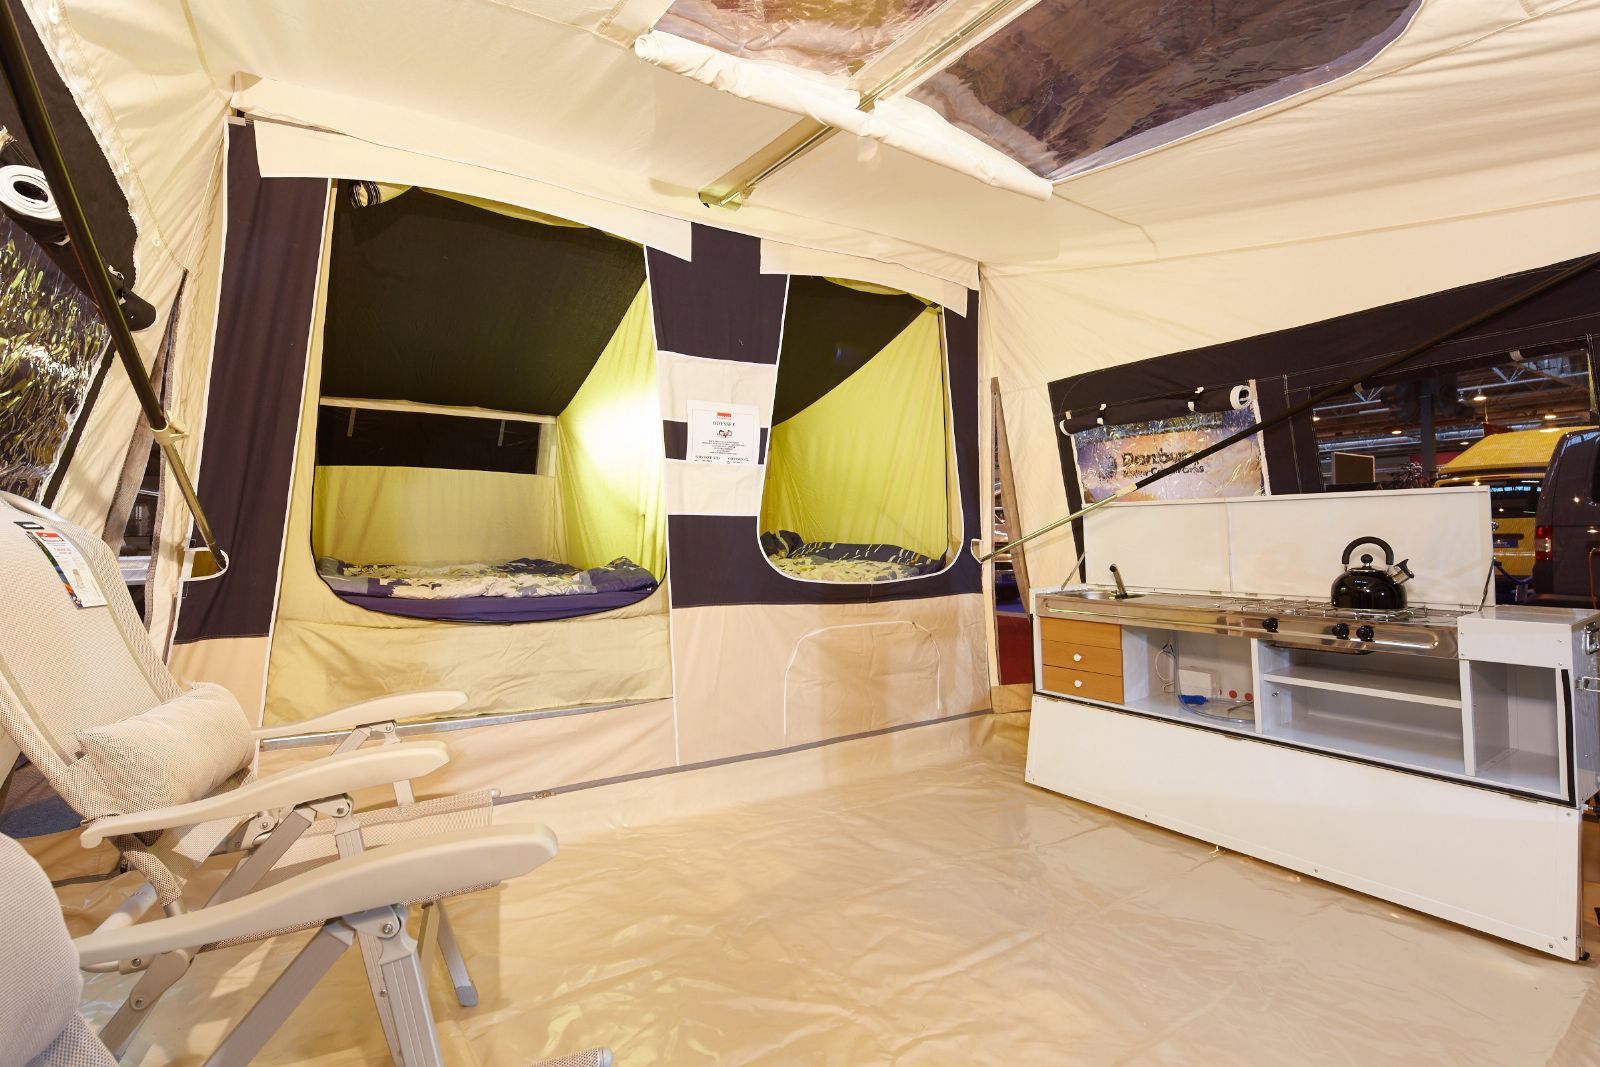 6 TRIGANO ODYSSEE & 10 Of The Best Trailer Tents and Folding Campers - Advice u0026 Tips ...